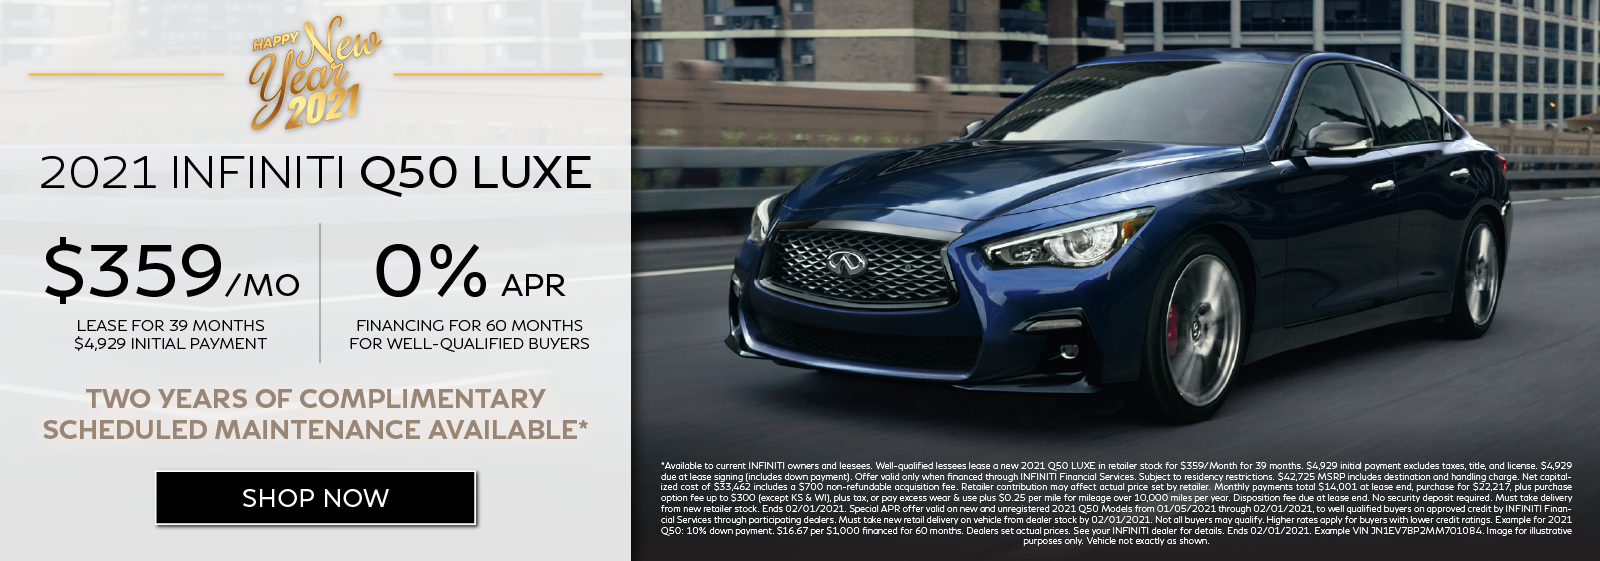 Well-qualified customers can lease a new 2021 Q50 LUXE for $359 per month for 39 months OR get 0% APR financing for 60 months plus get two years of complimentary scheduled maintenance.* Click to shop now.